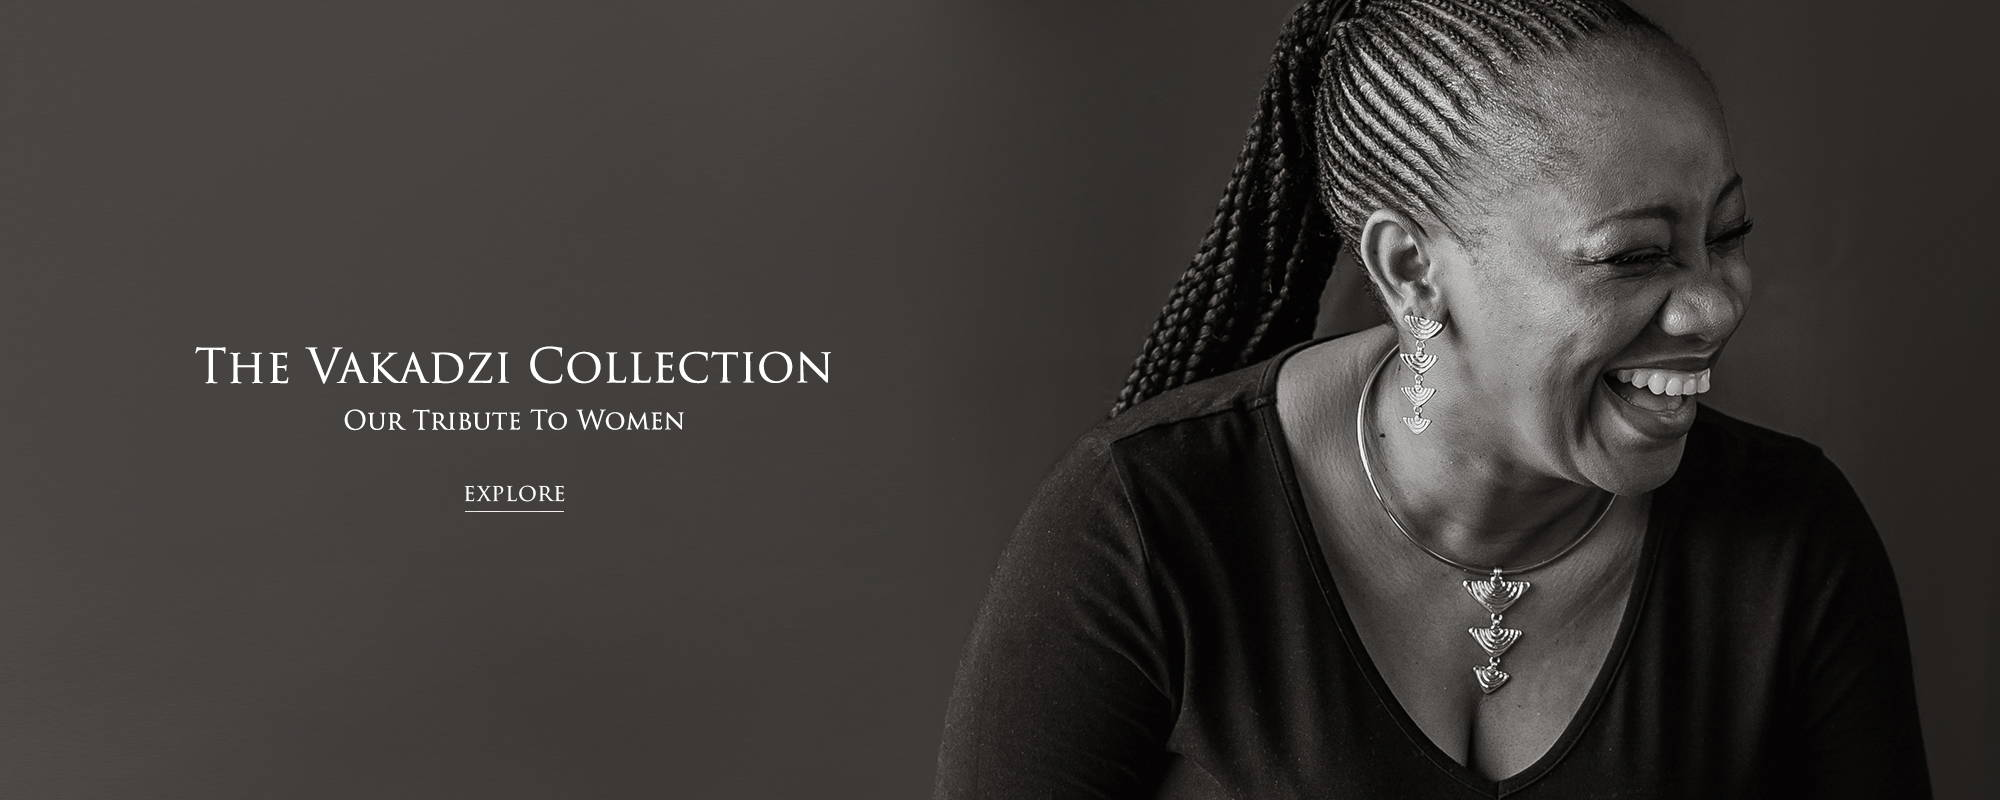 Explore The Vakadzi Collection